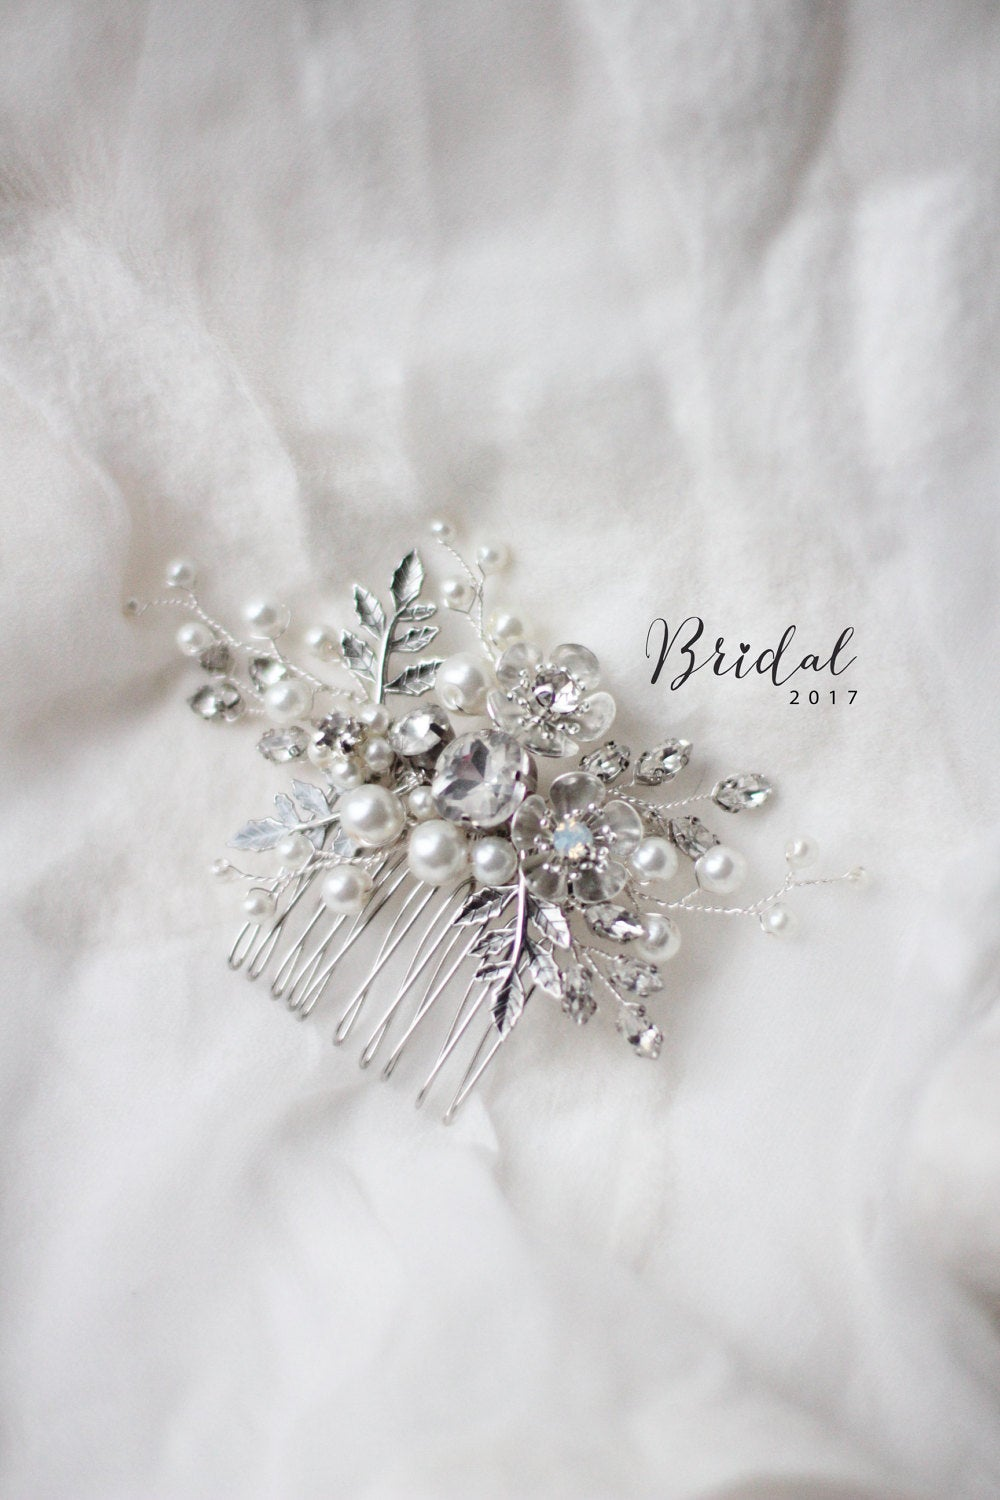 Bridal Hair Clip Opals Something Blue Light Stone Comb Wedding Flower Floral Twig Bridesmaid Hc-162